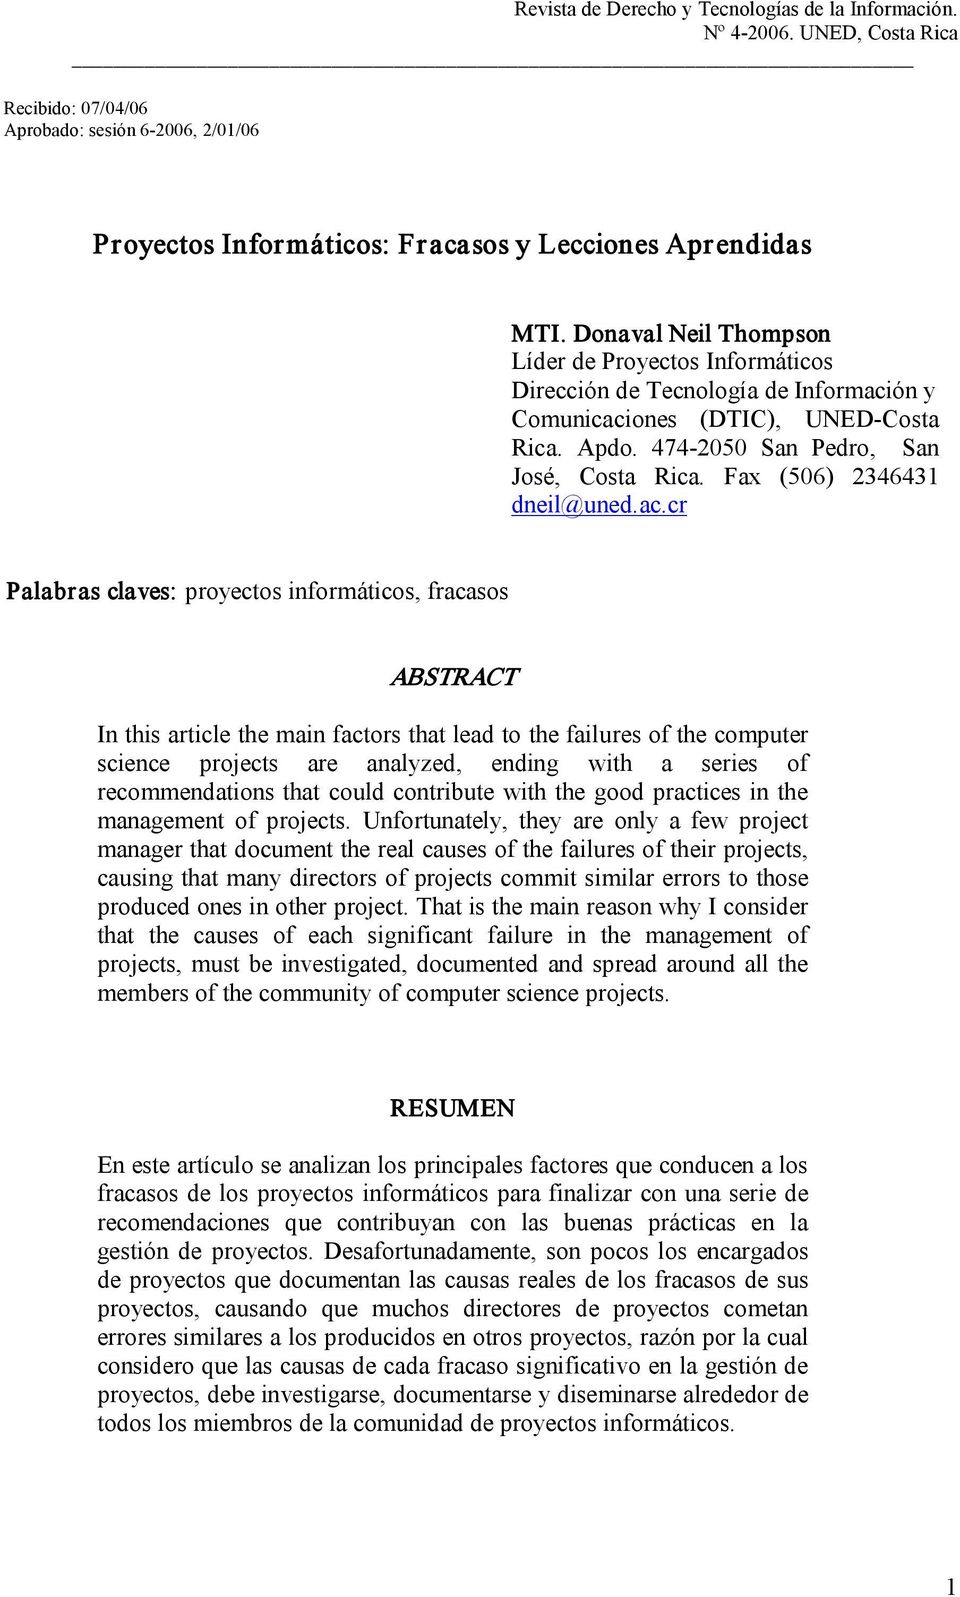 cr Palabras claves: proyectos informáticos, fracasos ABSTRACT In this article the main factors that lead to the failures of the computer science projects are analyzed, ending with a series of